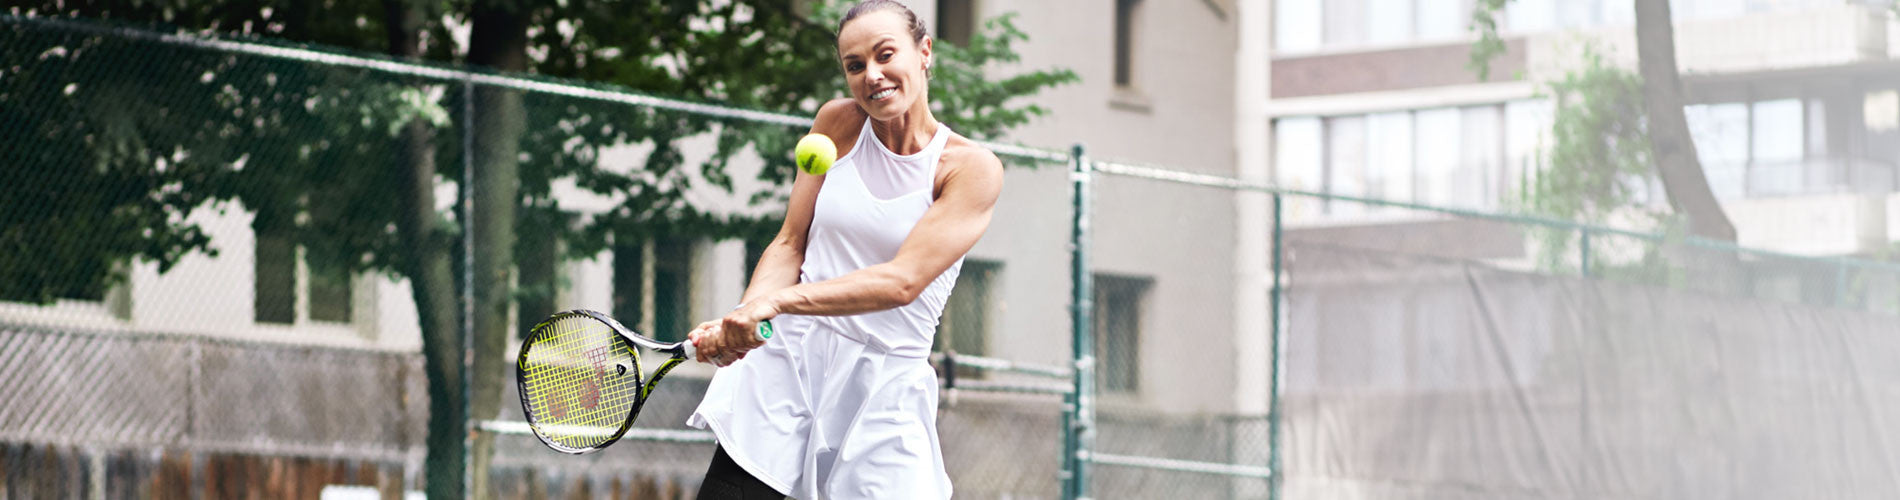 Shop-Tennis-Collection-Martina-Hingis-Tonic-Active